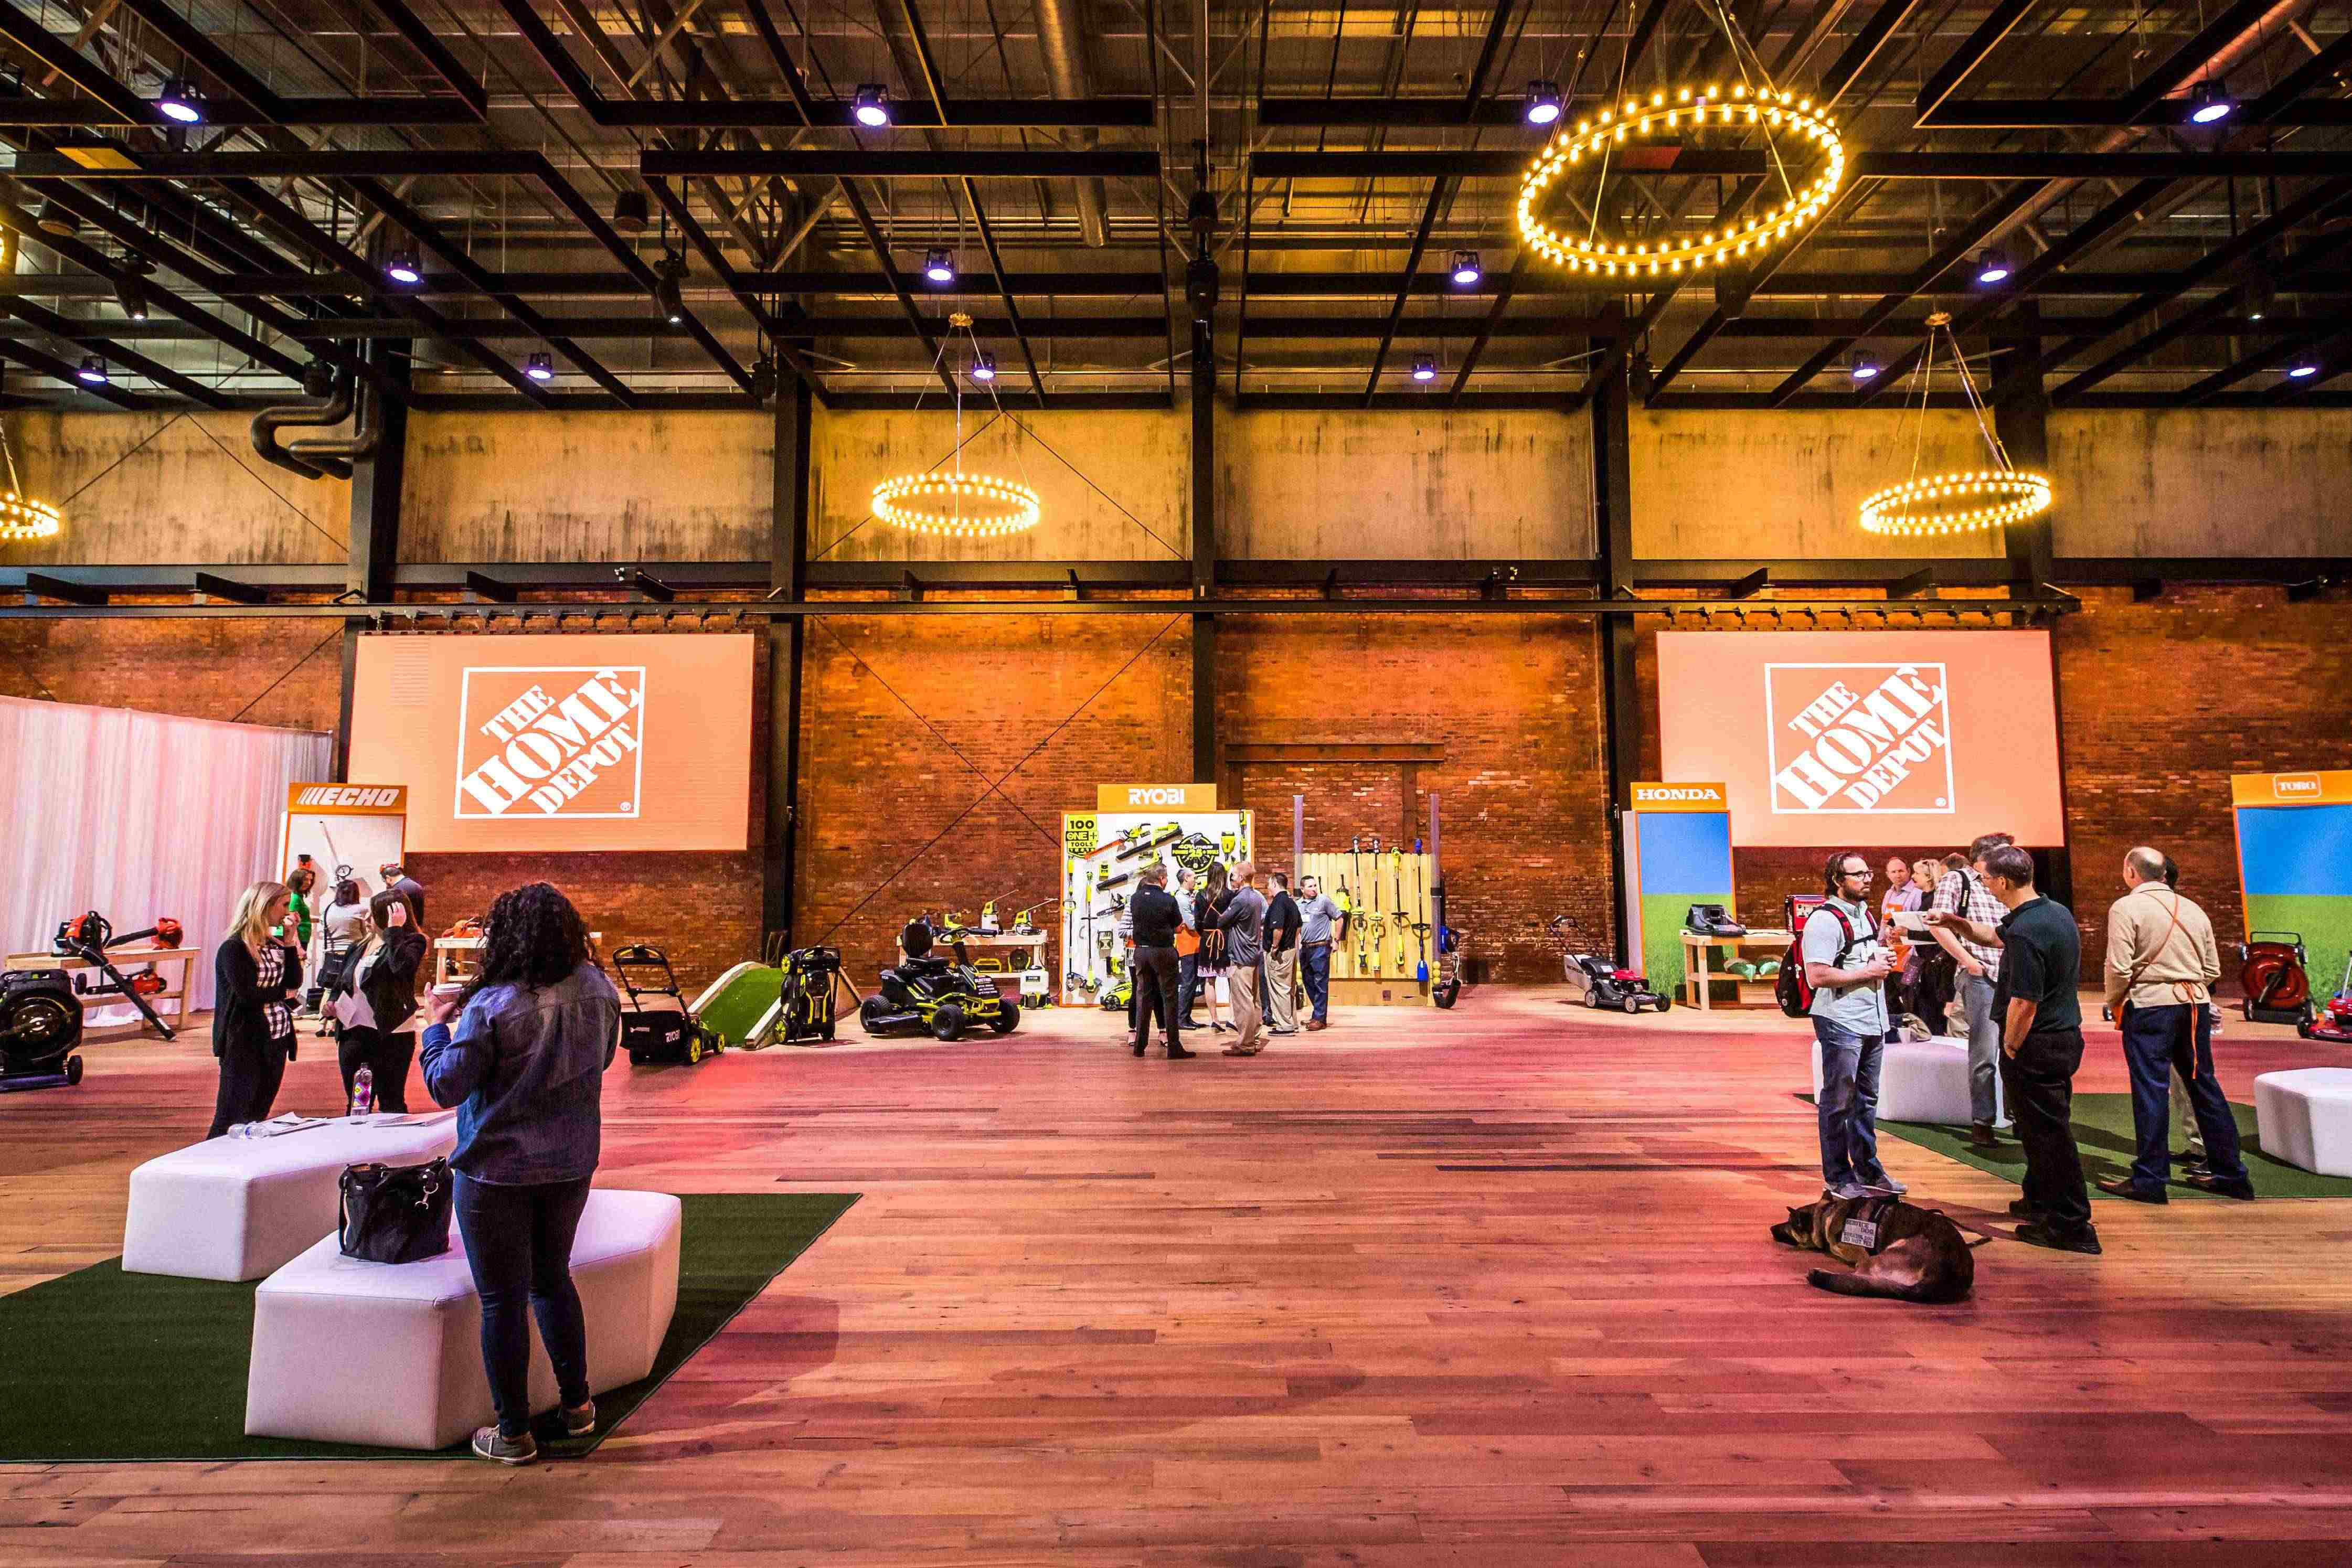 Spring sees new product offerings with Home Depot